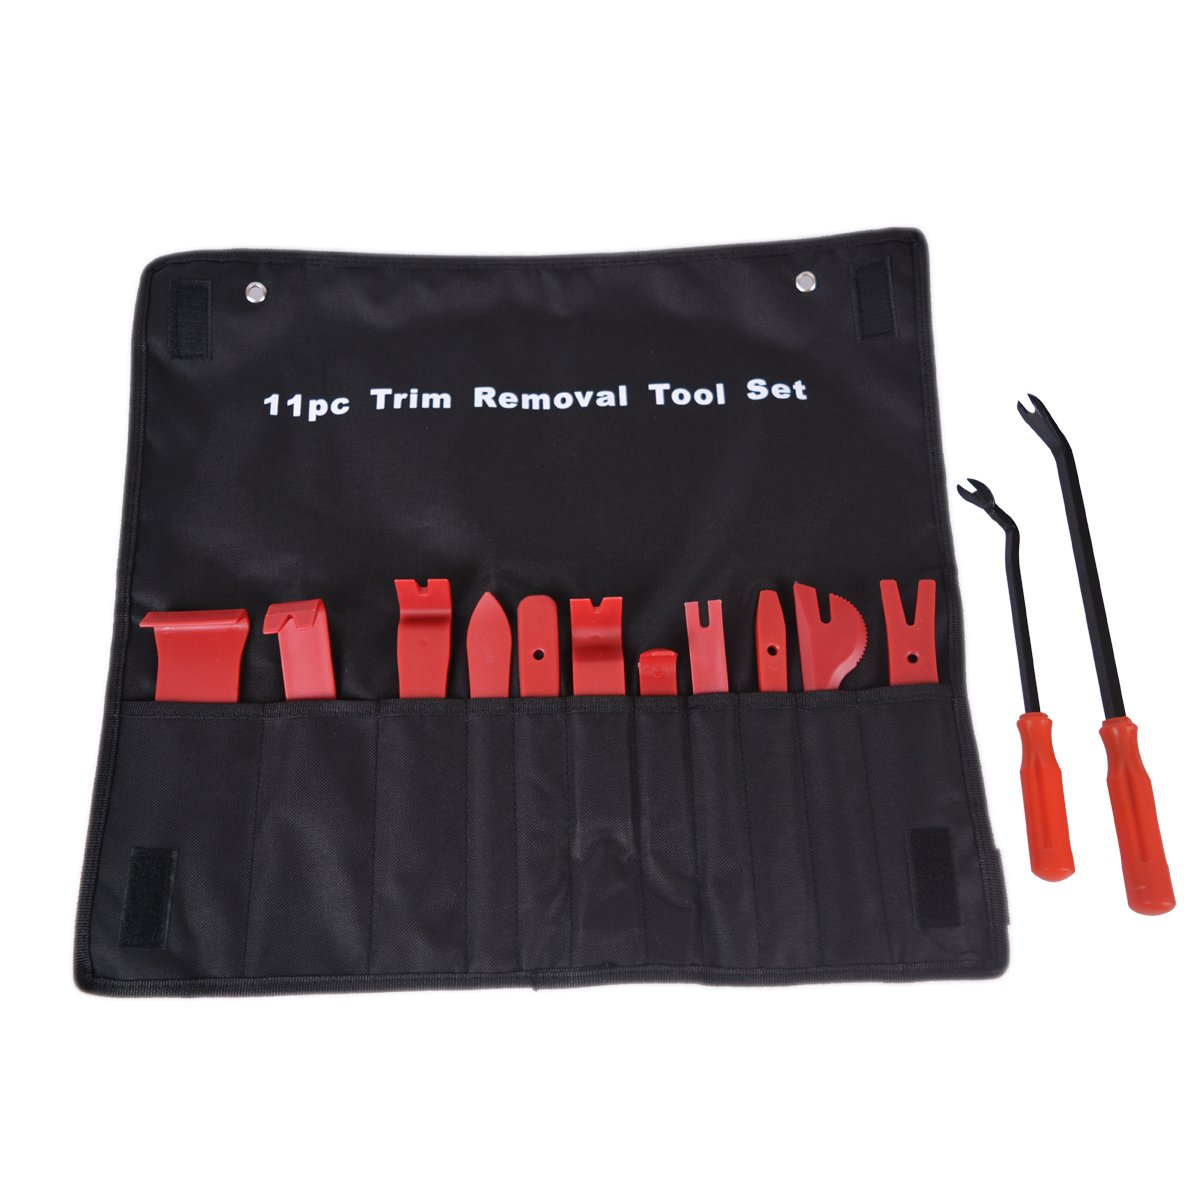 13 Pcs Premium Auto Trim Upholstery Fastener Clips Removal Tool Kit 2 Fastener Removers Included Baitaihem Auto Trim Removal Tool Set